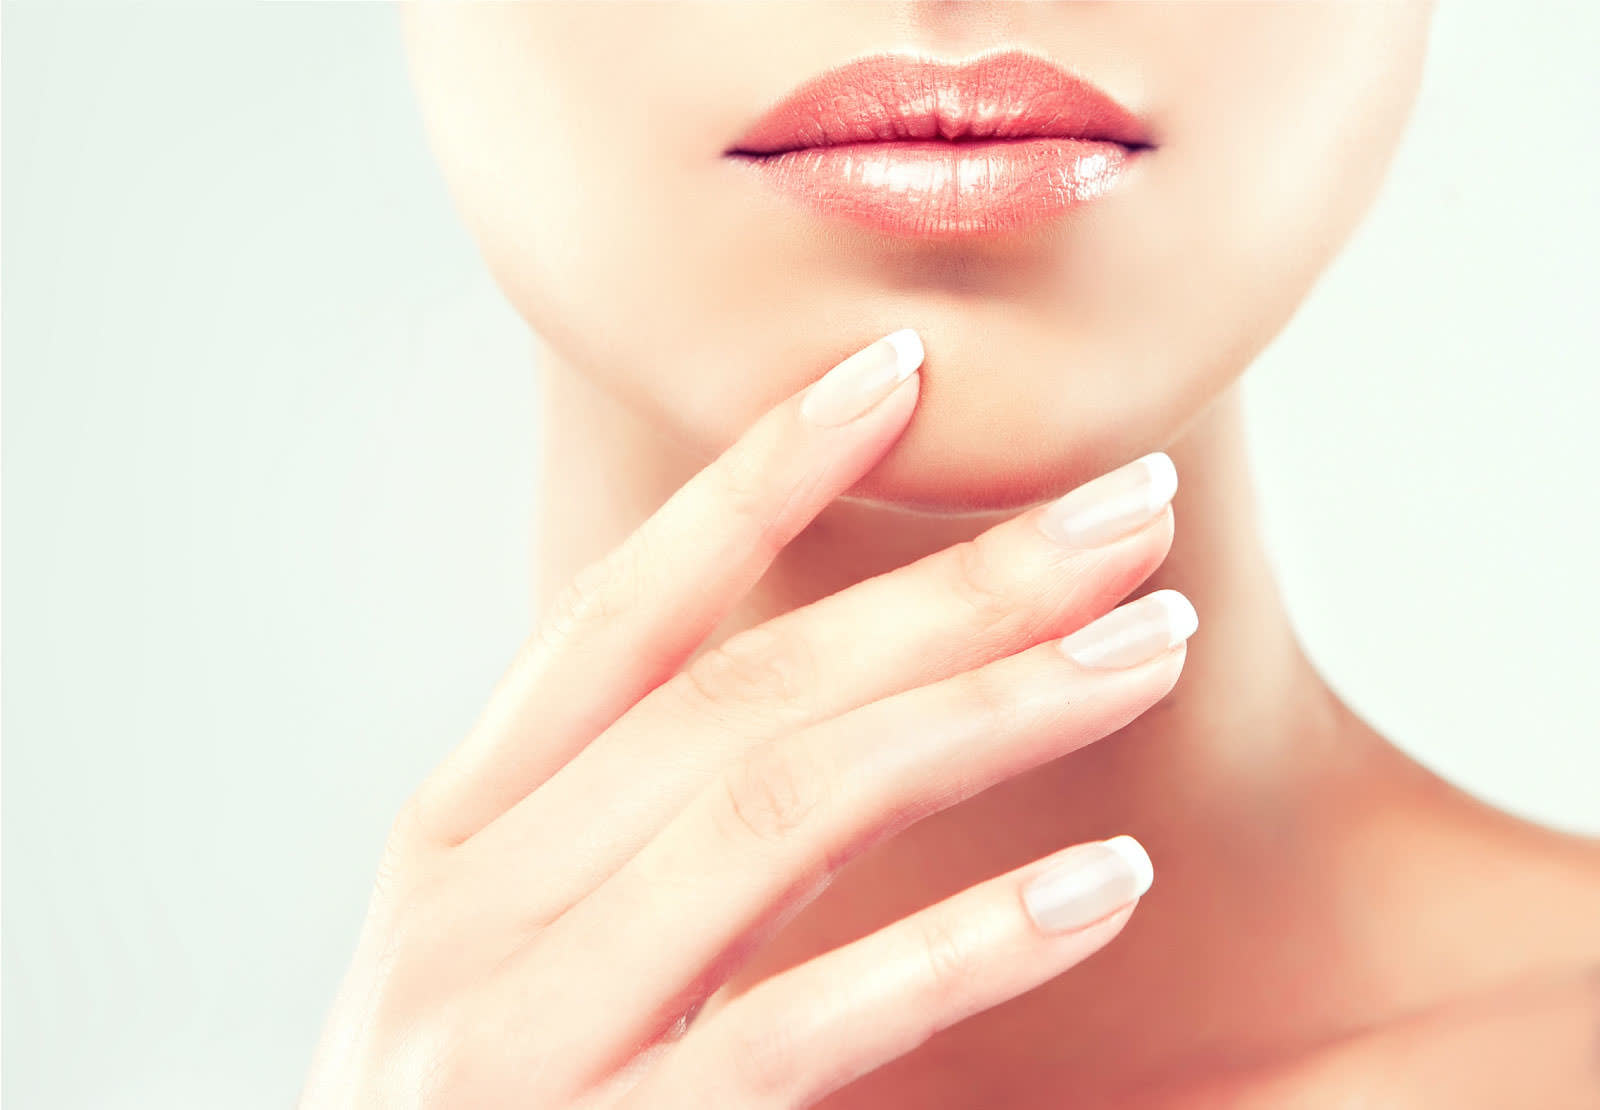 4 Ways to Healthy, Natural Nails